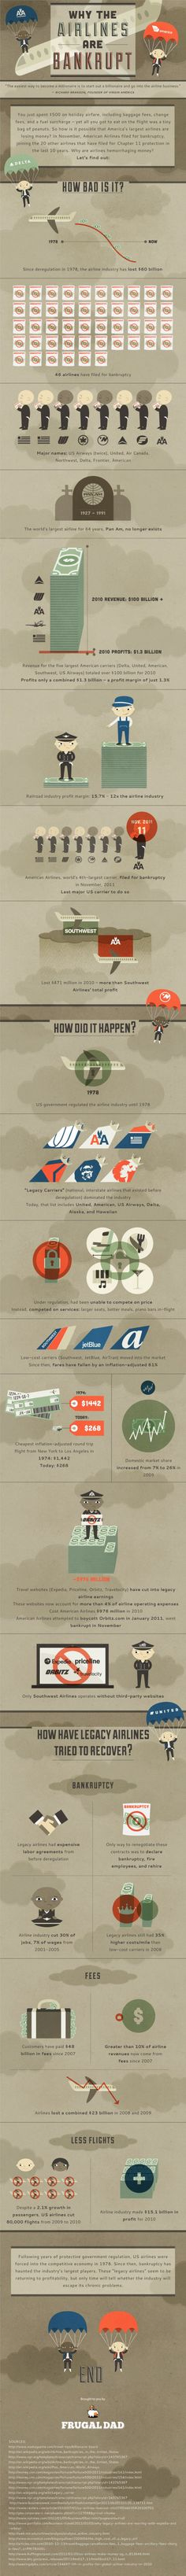 Why the Airlines are Bankrupt[INFOGRAPHIC]